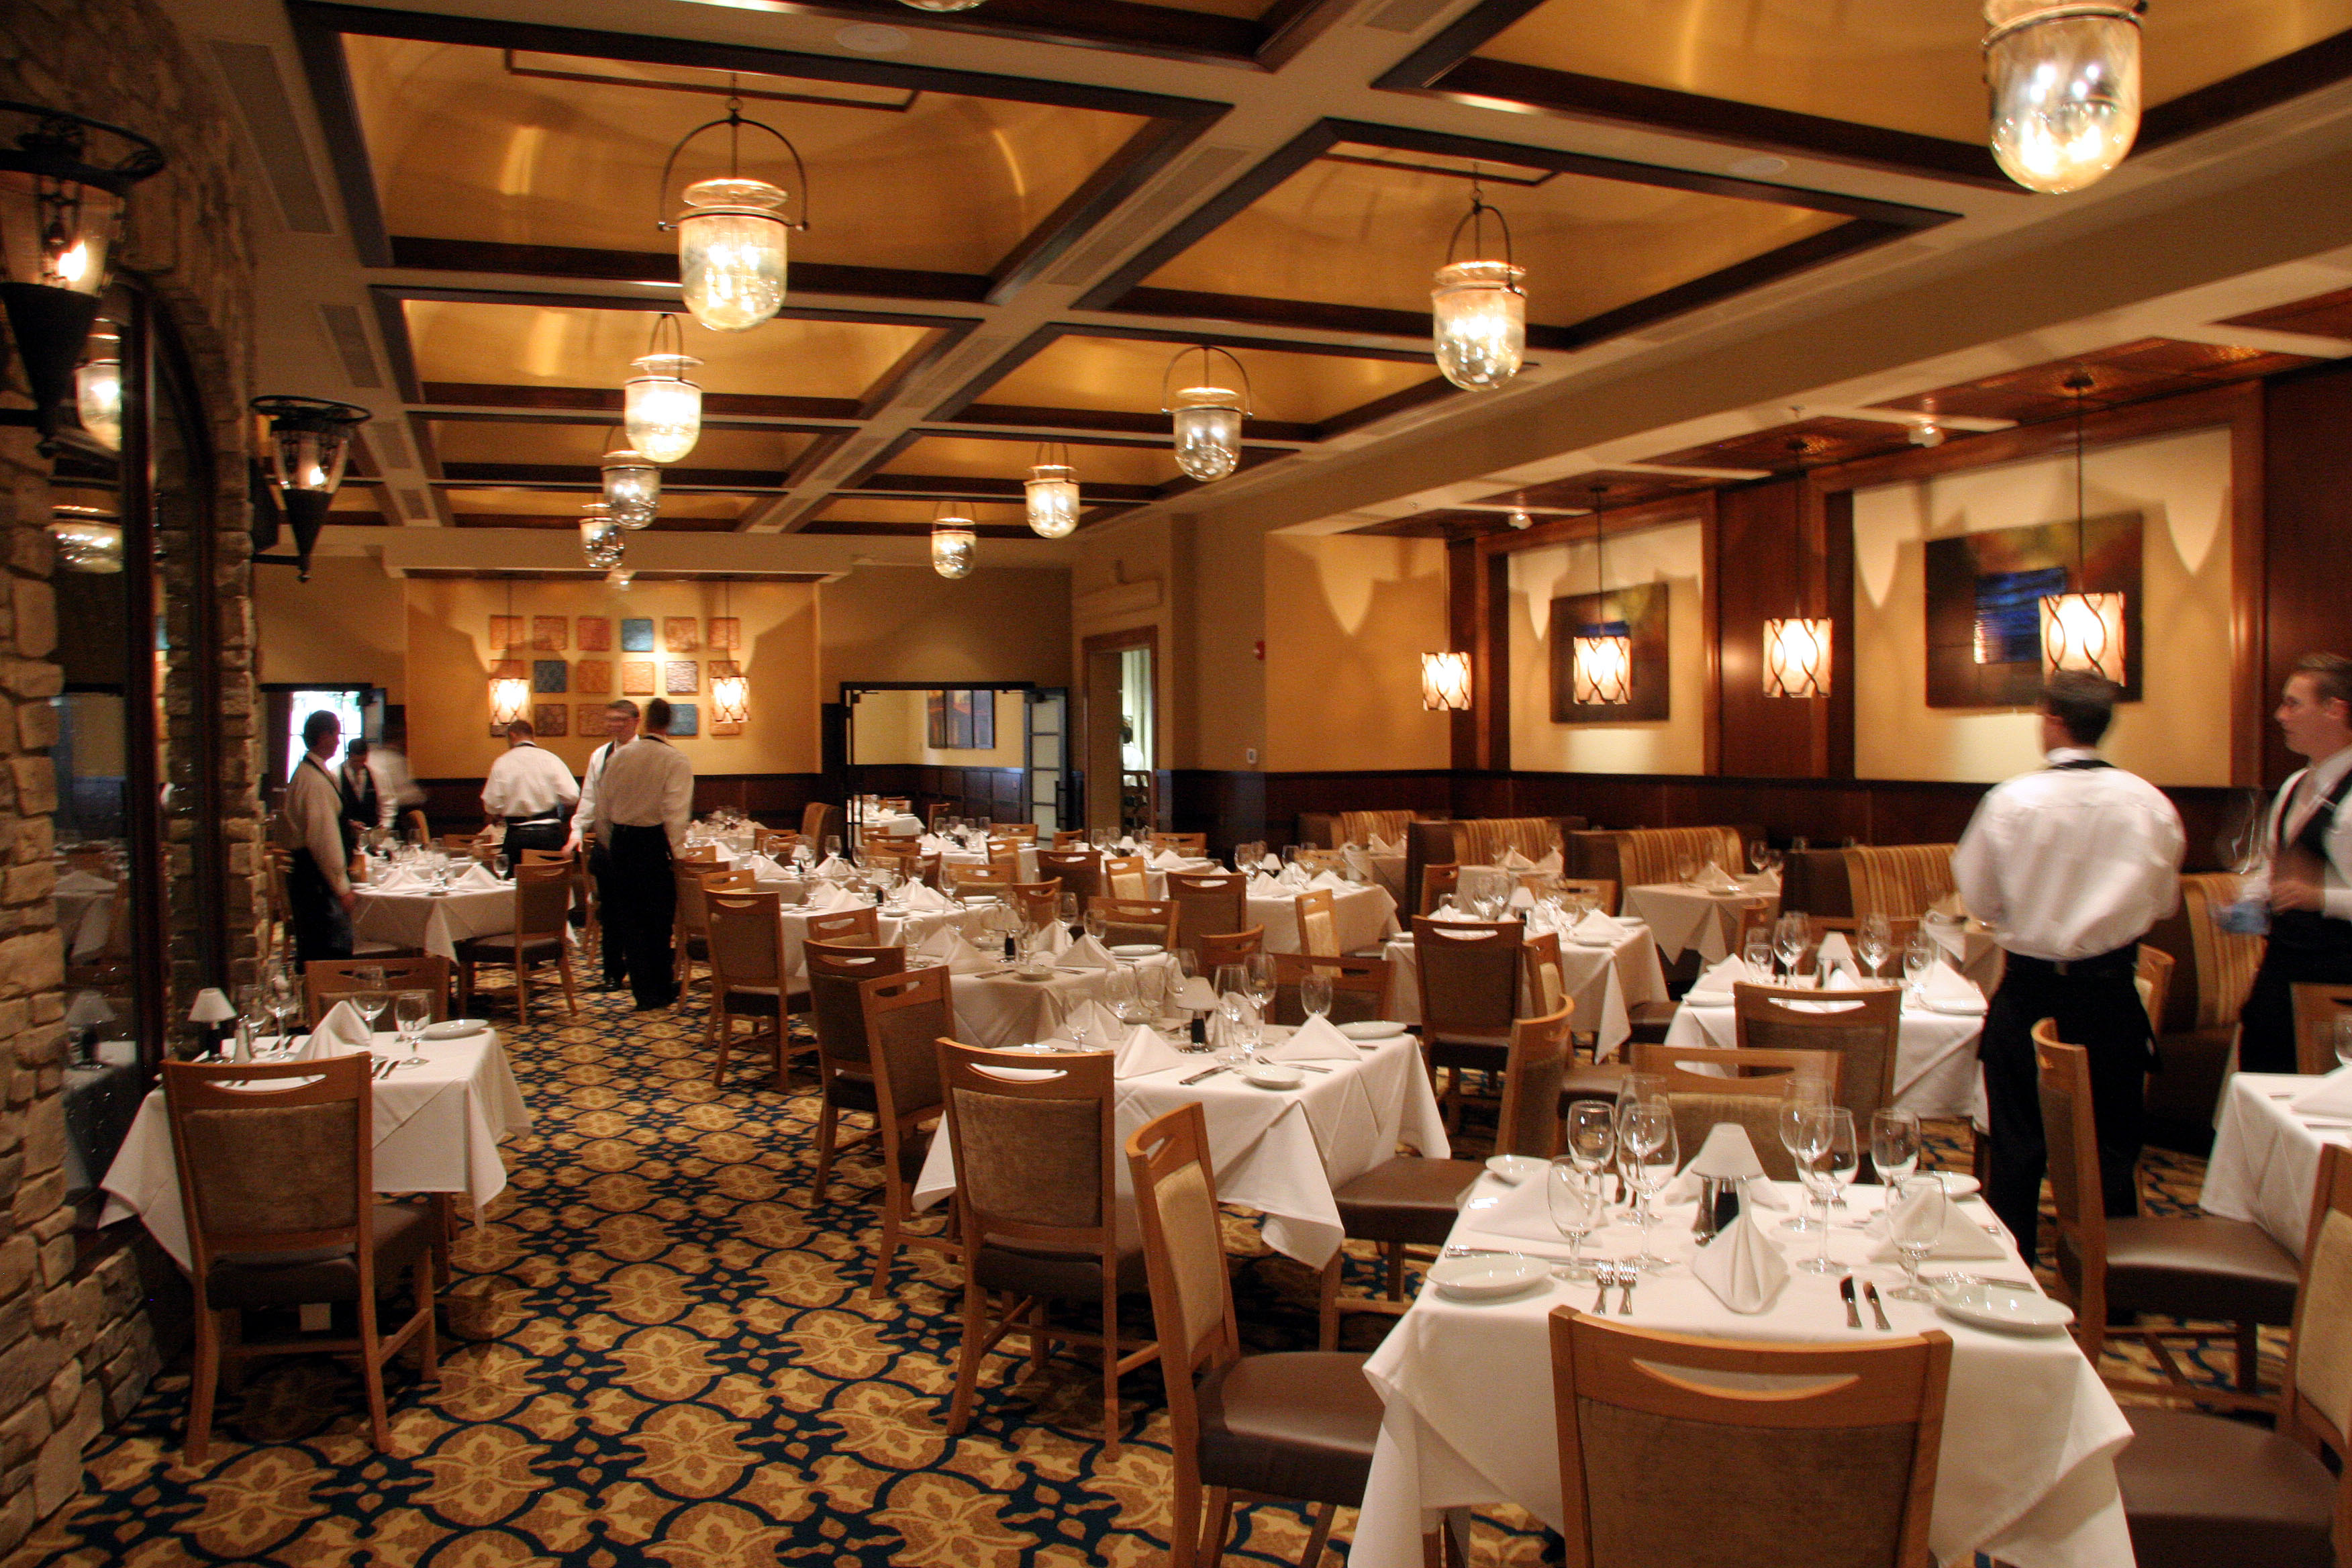 Interior of Ruth's Chris Steak House